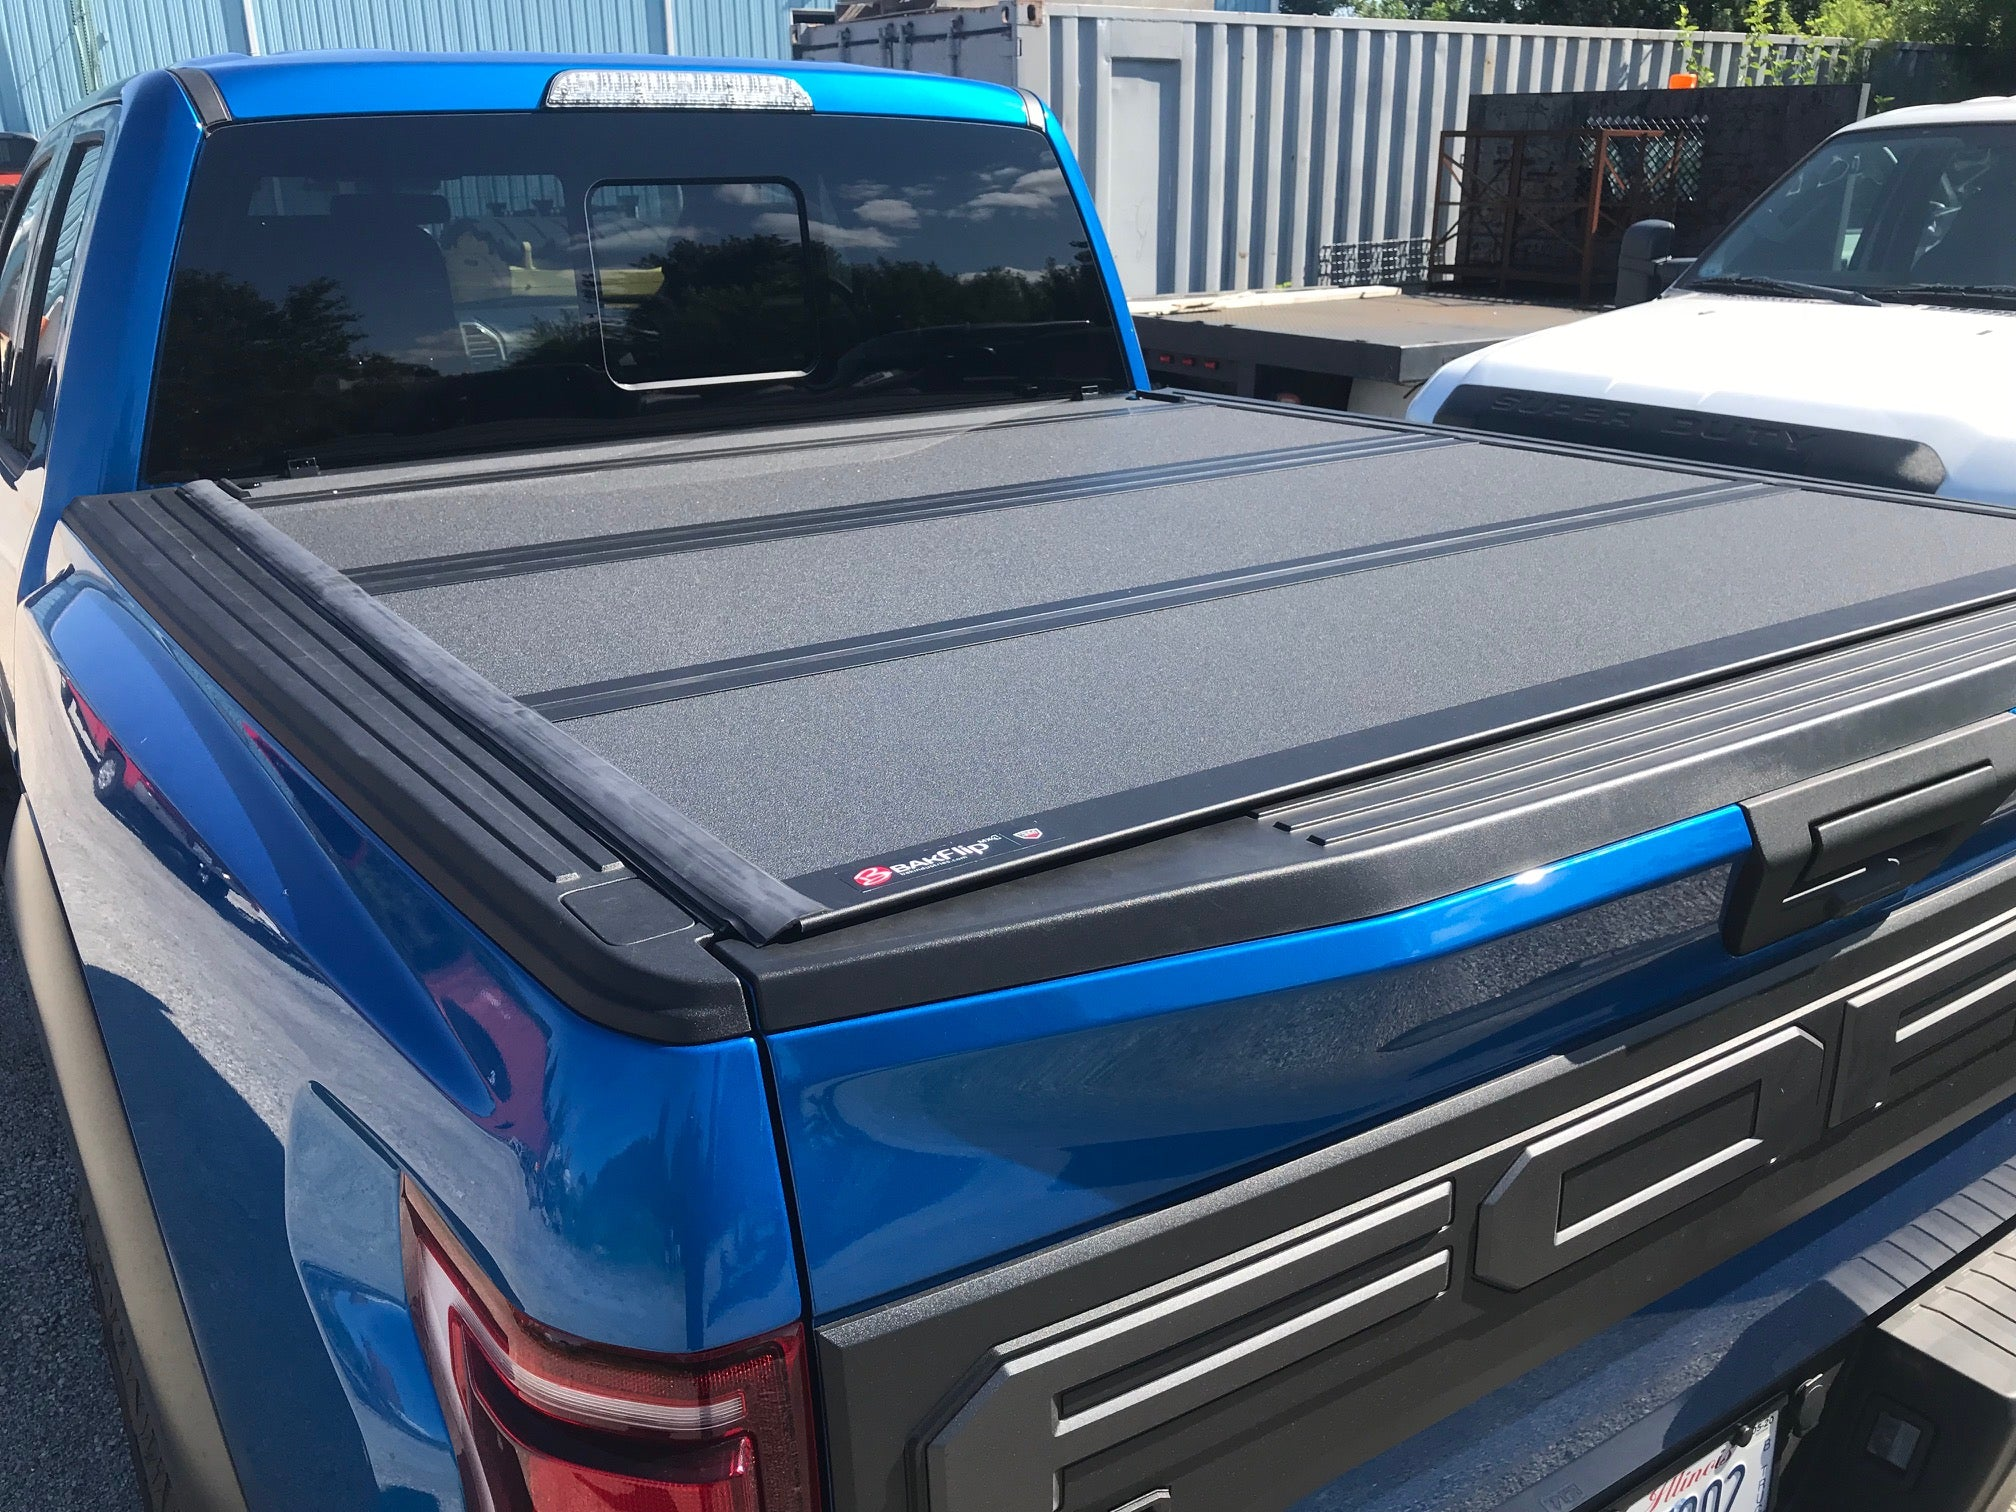 2019 Ford Raptor WIth Bakflip Tonneau Cover Installation Near Me